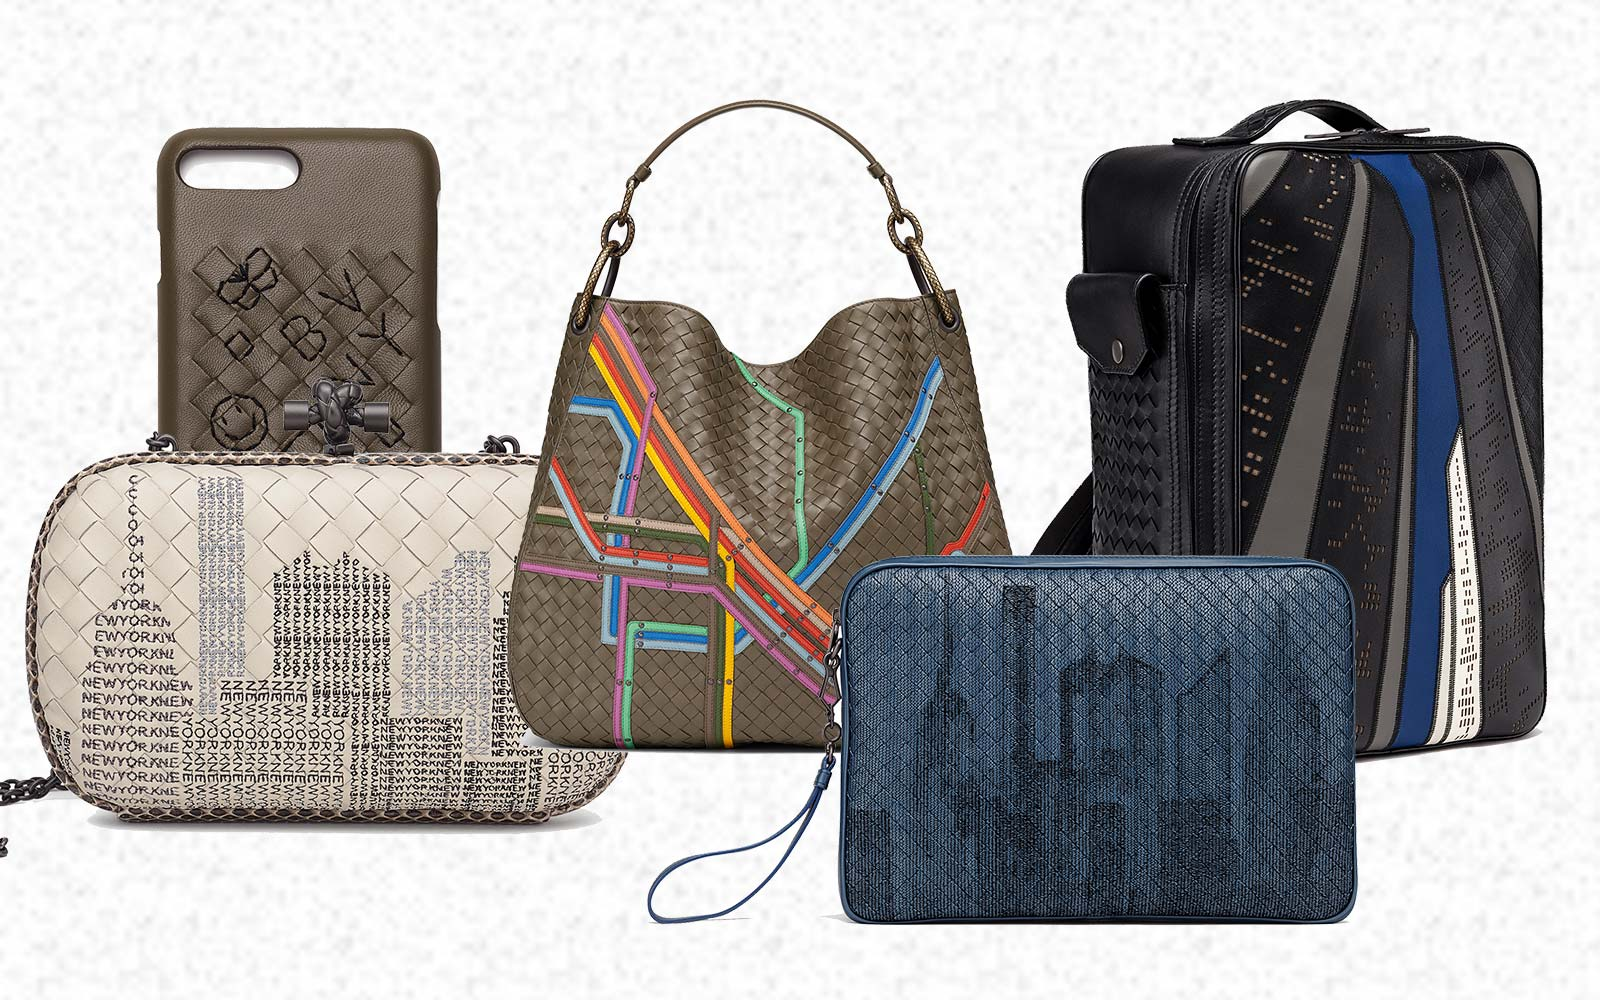 Bottega Veneta's New NYC Bags Are Perfect for Your Next Urban Adventure